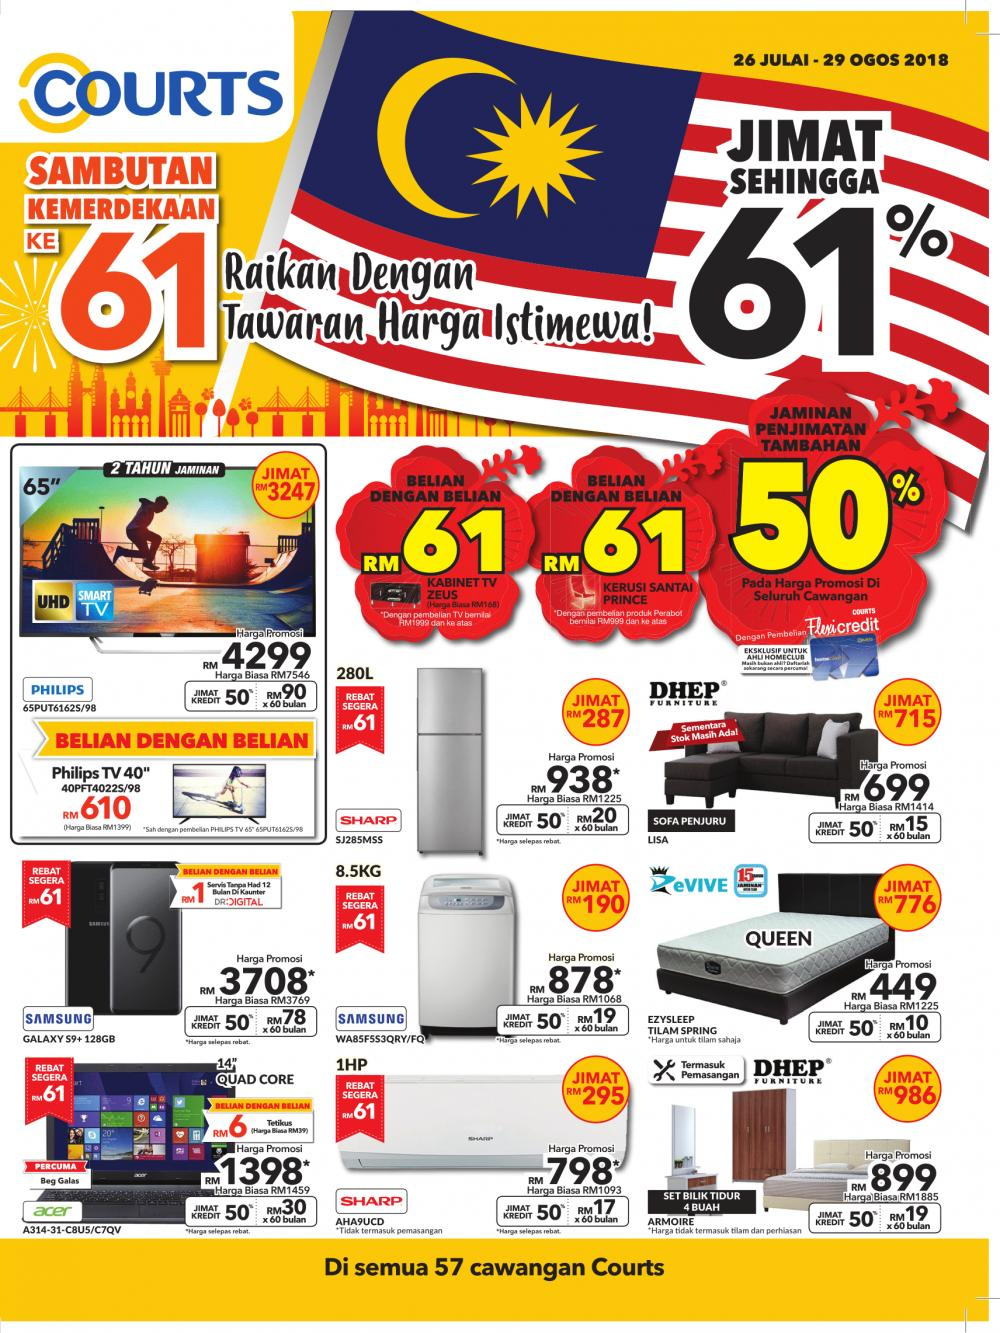 Courts Mammoth Sofa Catalogue Malaysia Review Home Co